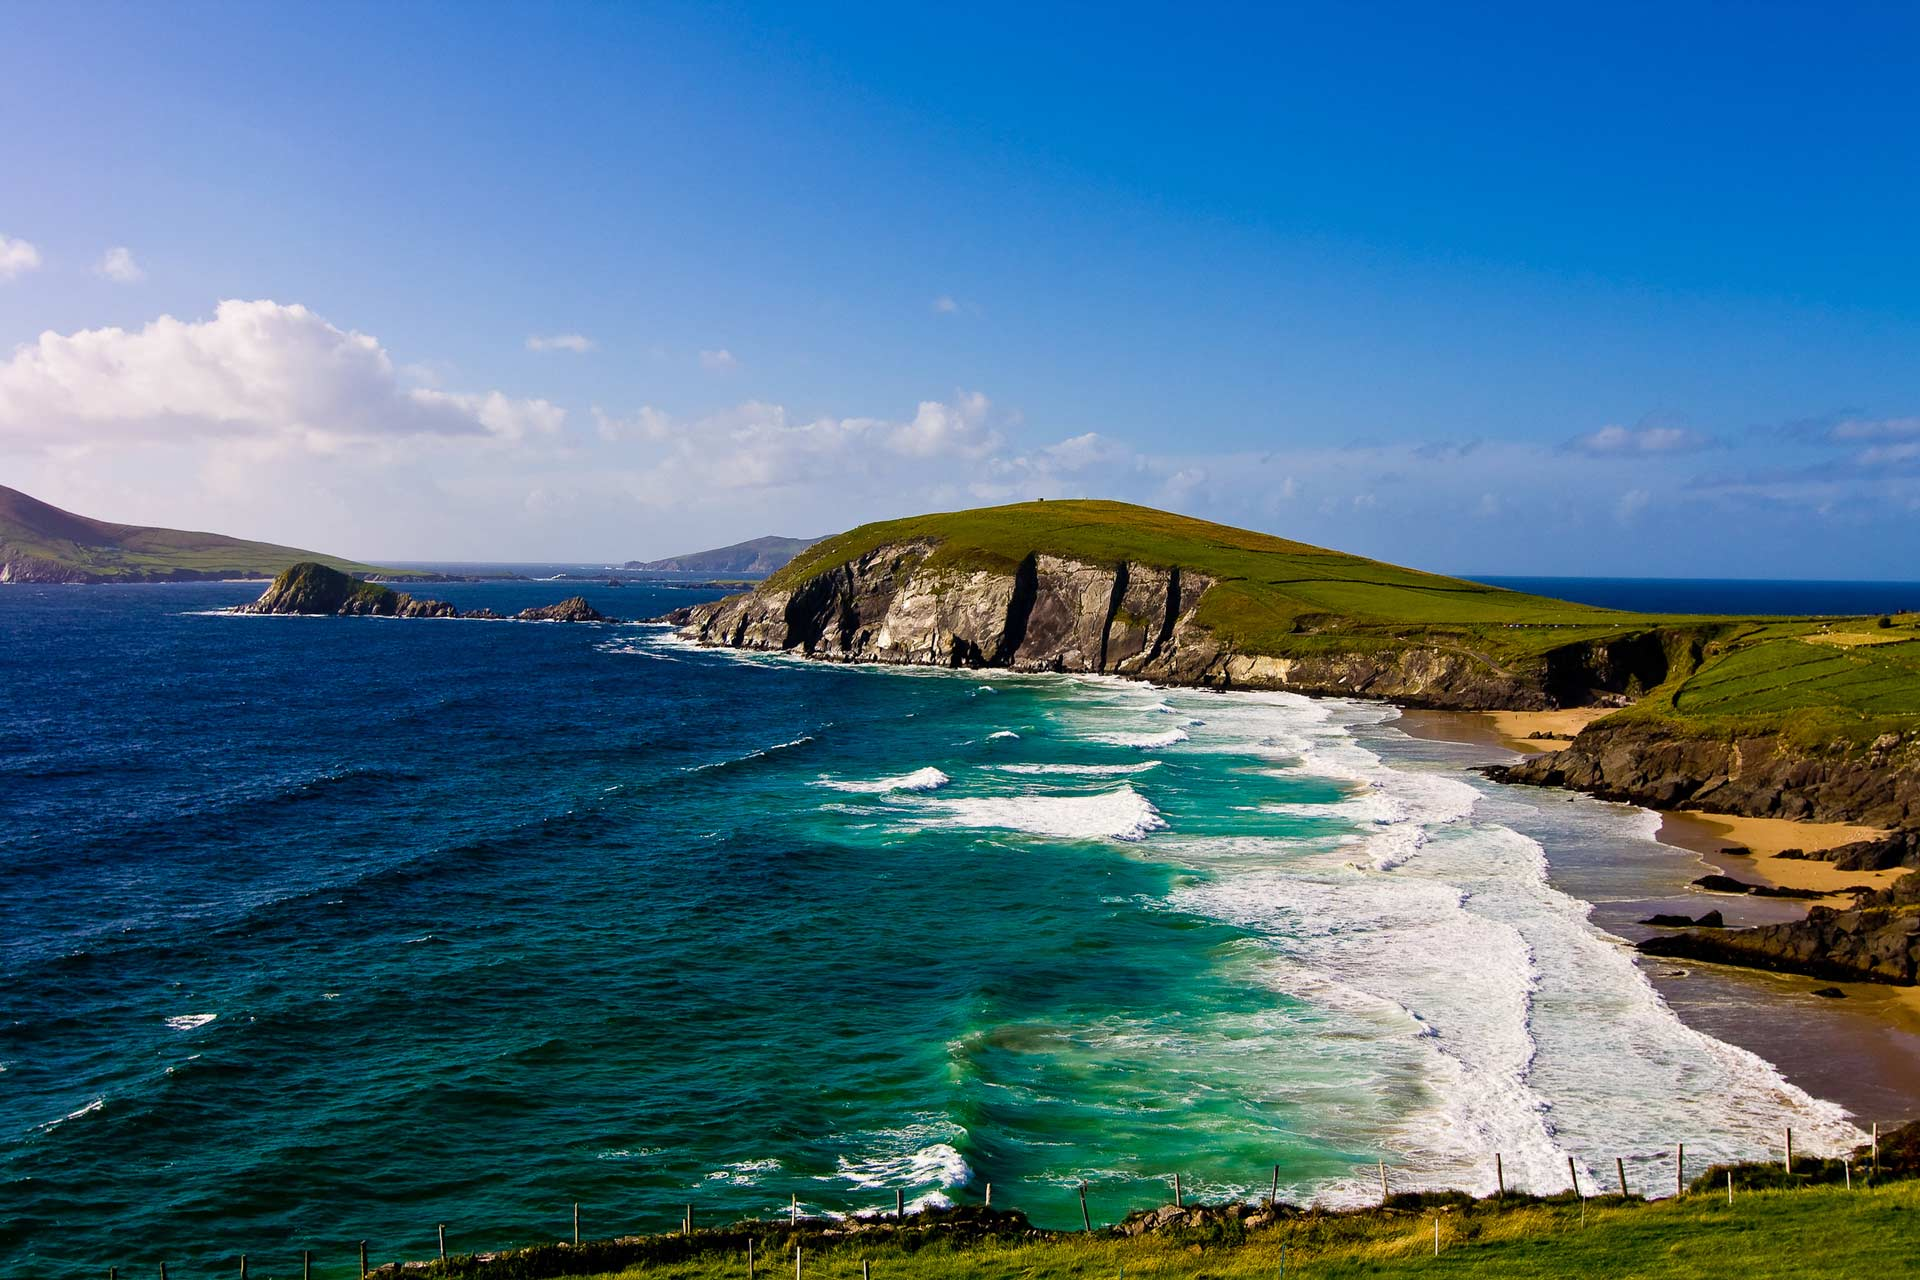 View of Coumeenoole beach on the Slea Head drive, on the Dingle Peninsula, on the Wild Atlantic Way in Ireland